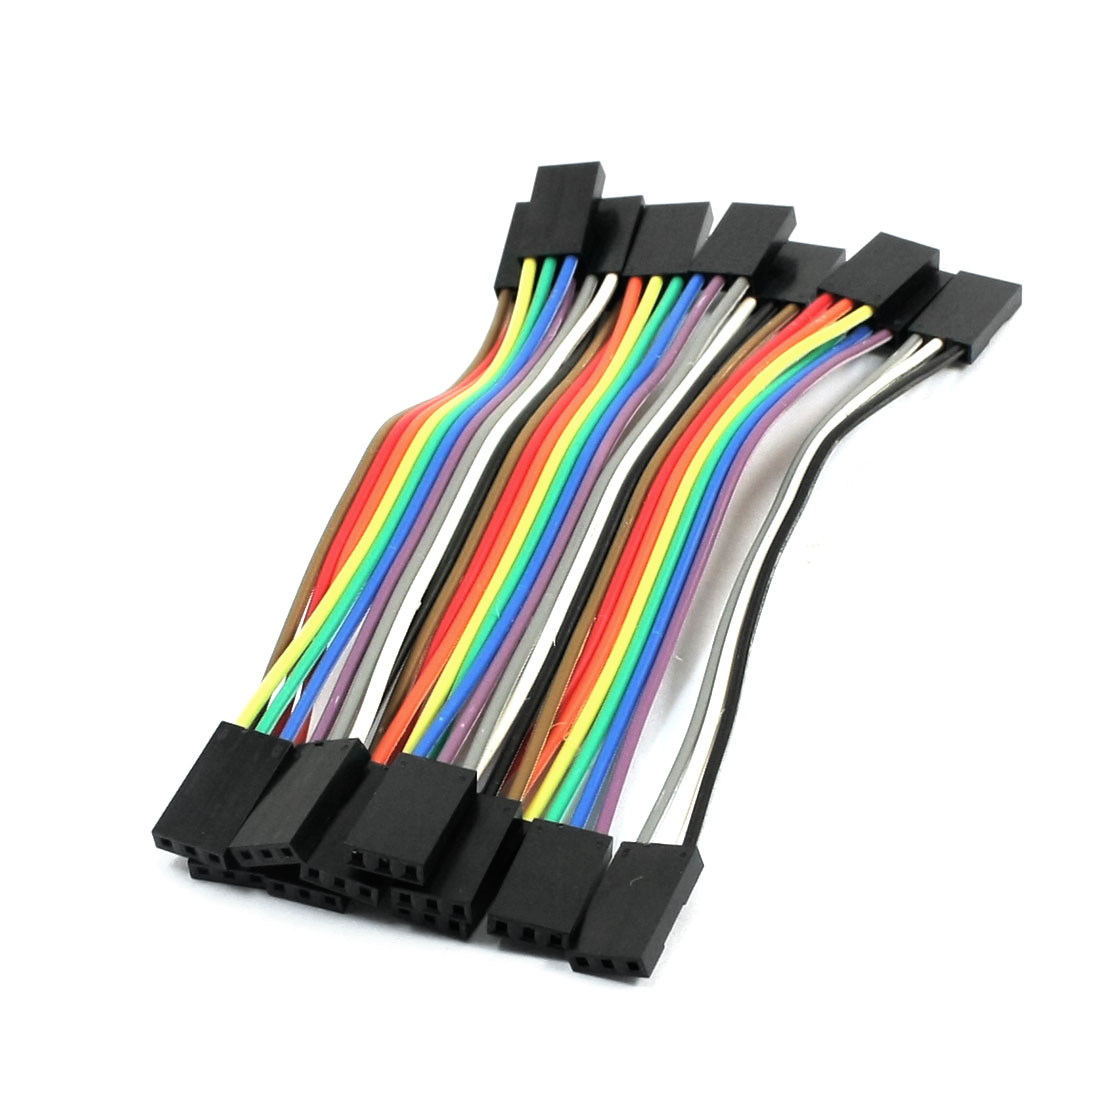 10pcs 3P-3P Female to Female Breadboard Connect Test Jumper Cable Wire 10cm